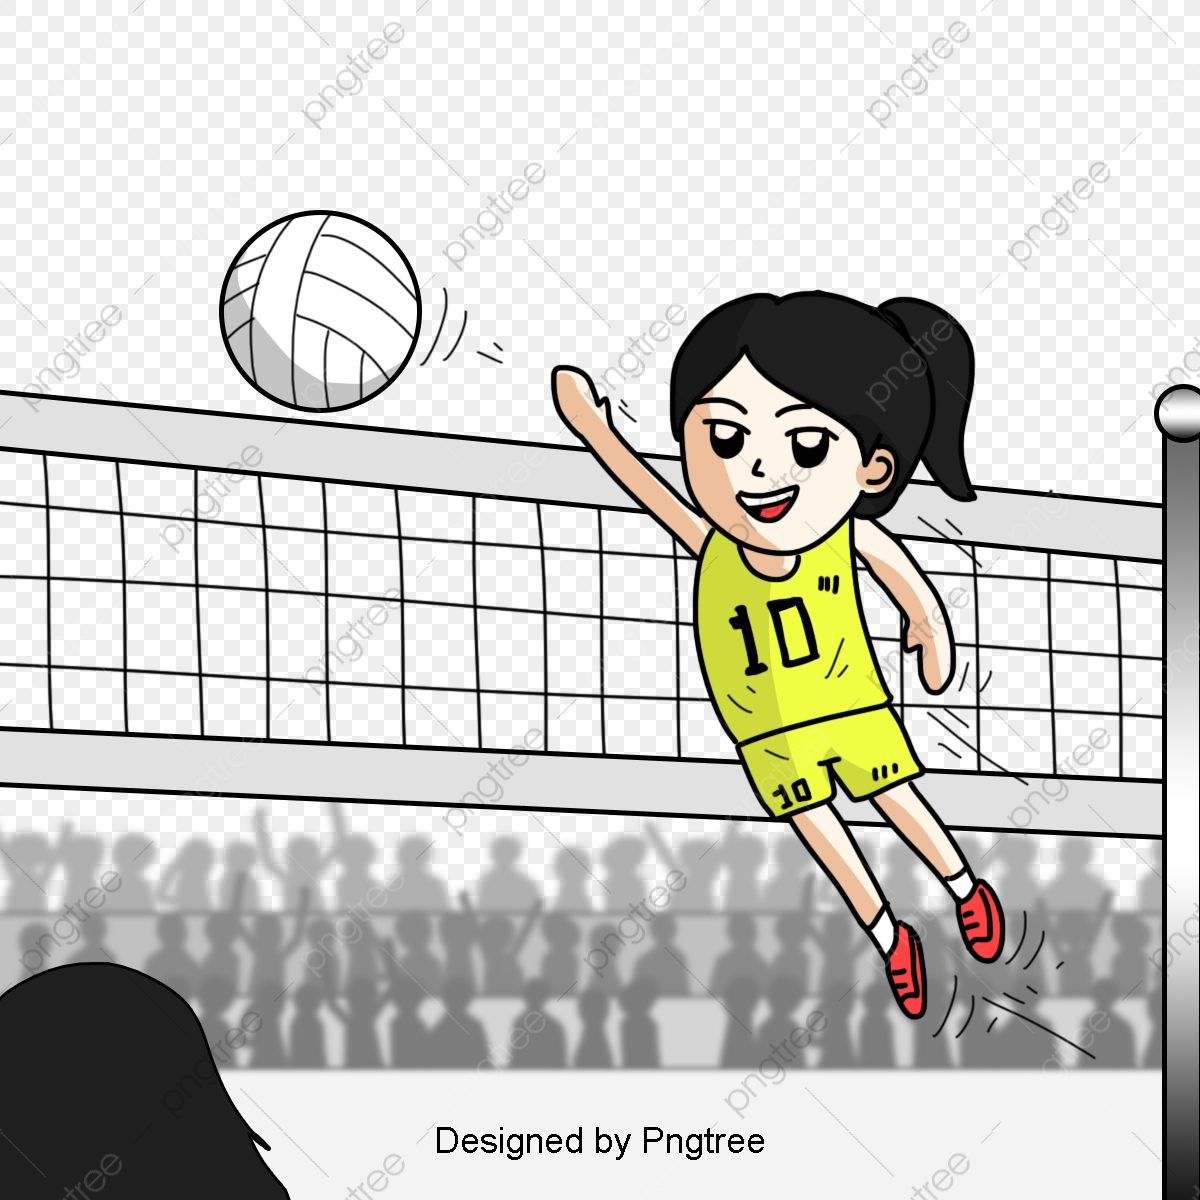 Volleyball Volleyball Icons Volleyball Clipart Png And Vector With Transparent Background For Free Download